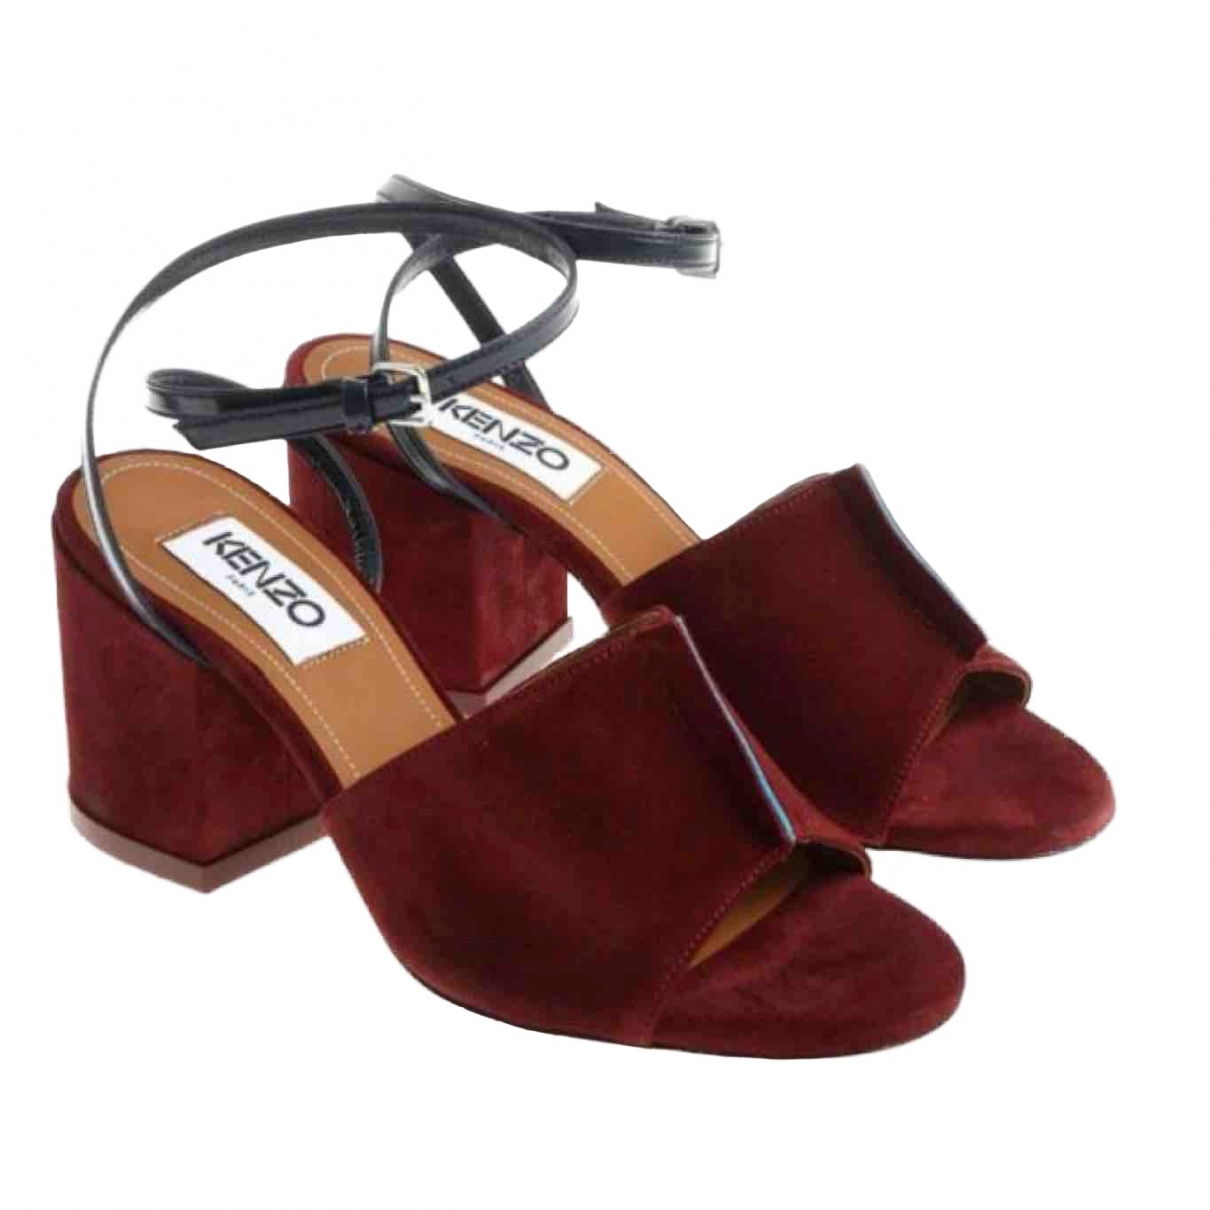 Kenzo \N Burgundy Suede Sandals for Women 38 EU